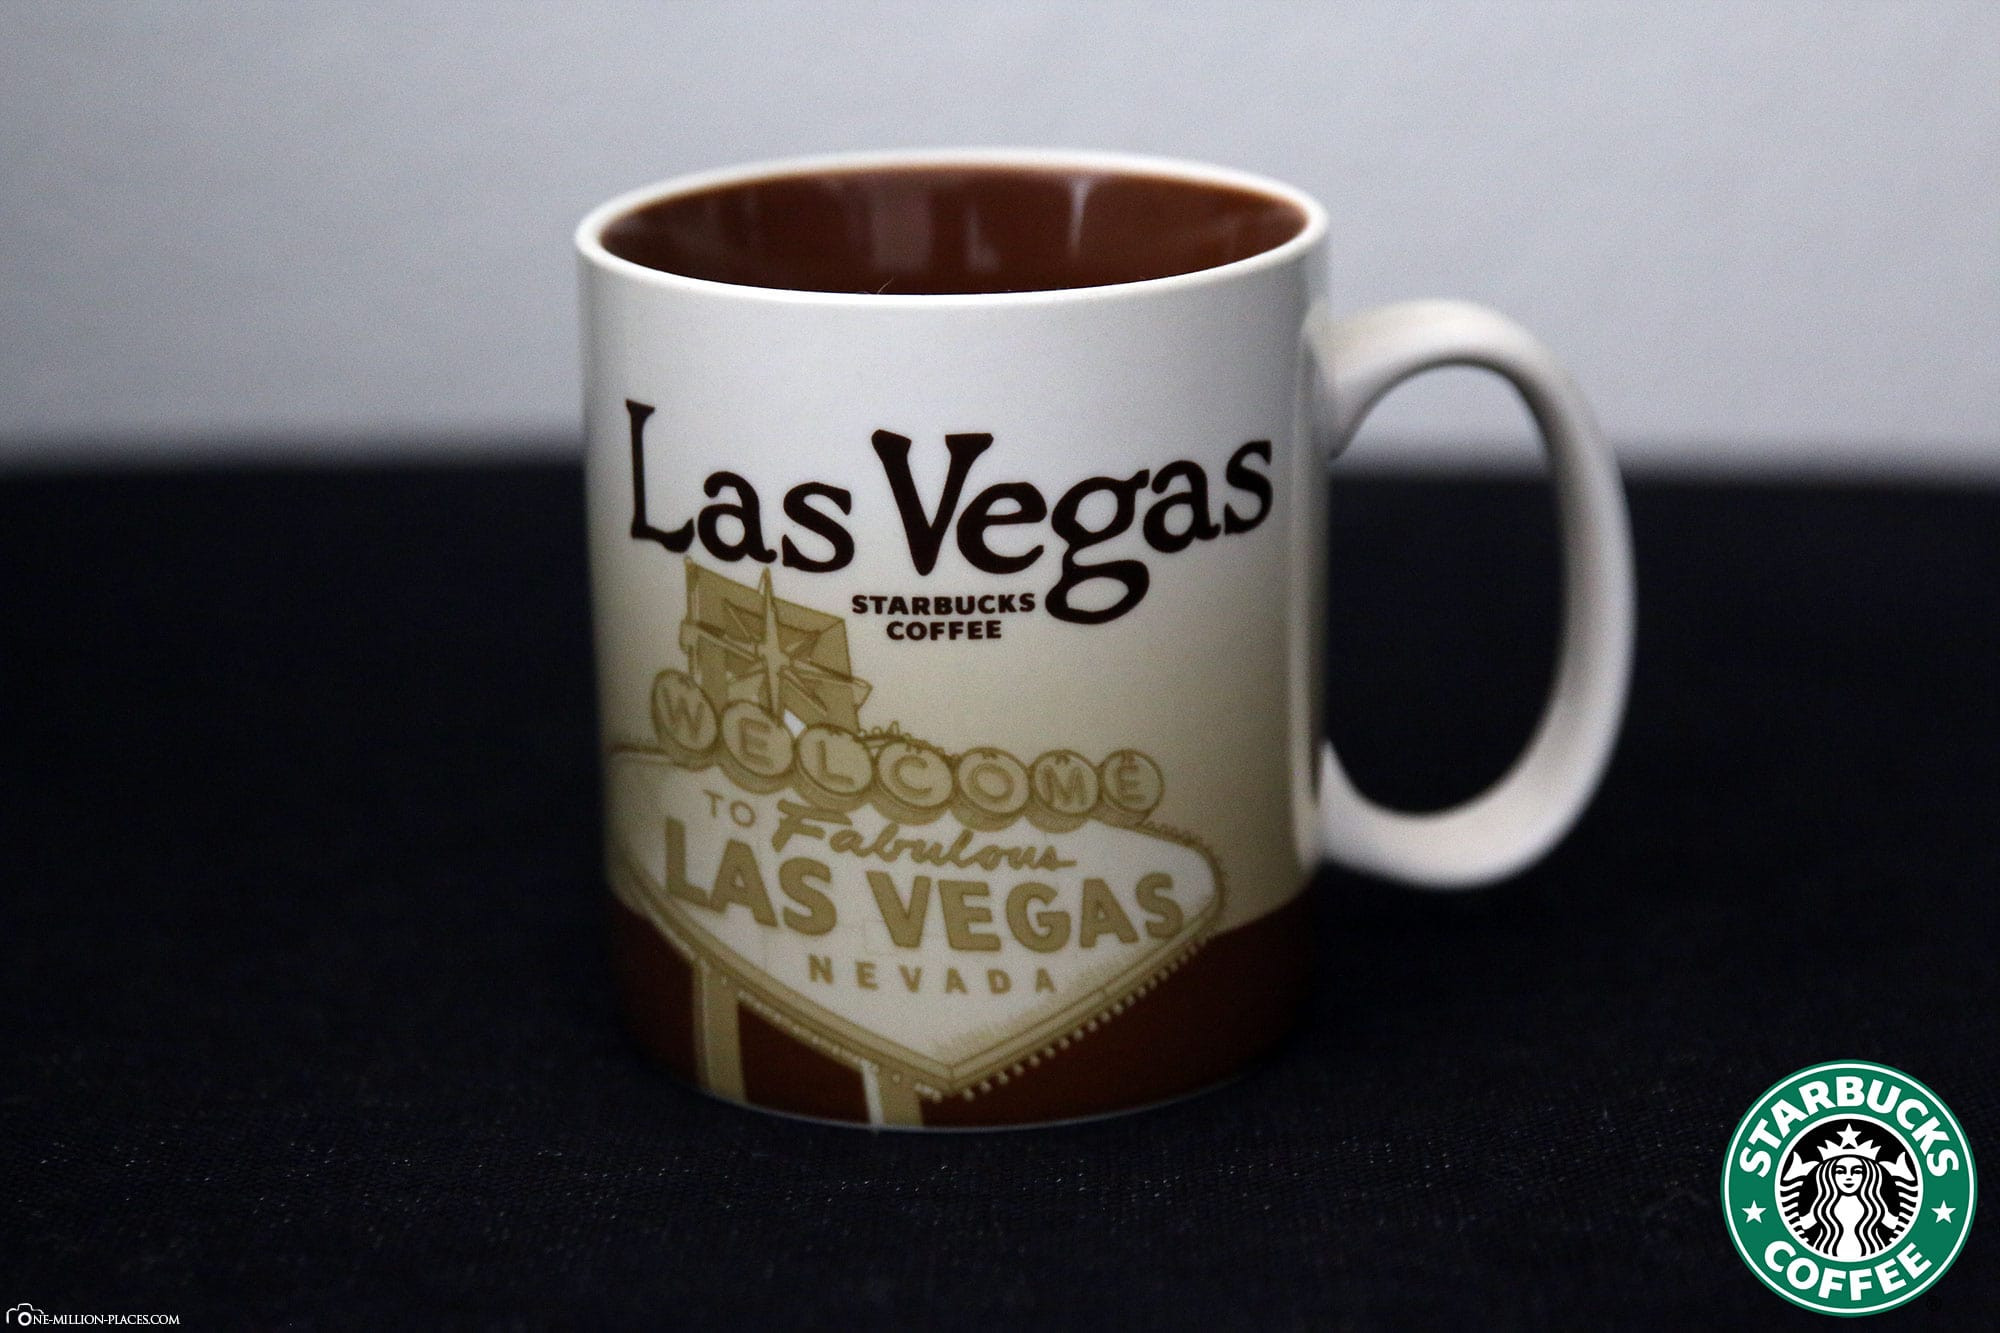 Las Vegas, Starbucks Tasse, Global Icon Serie, City Mugs, Sammlung, USA, Reisebericht